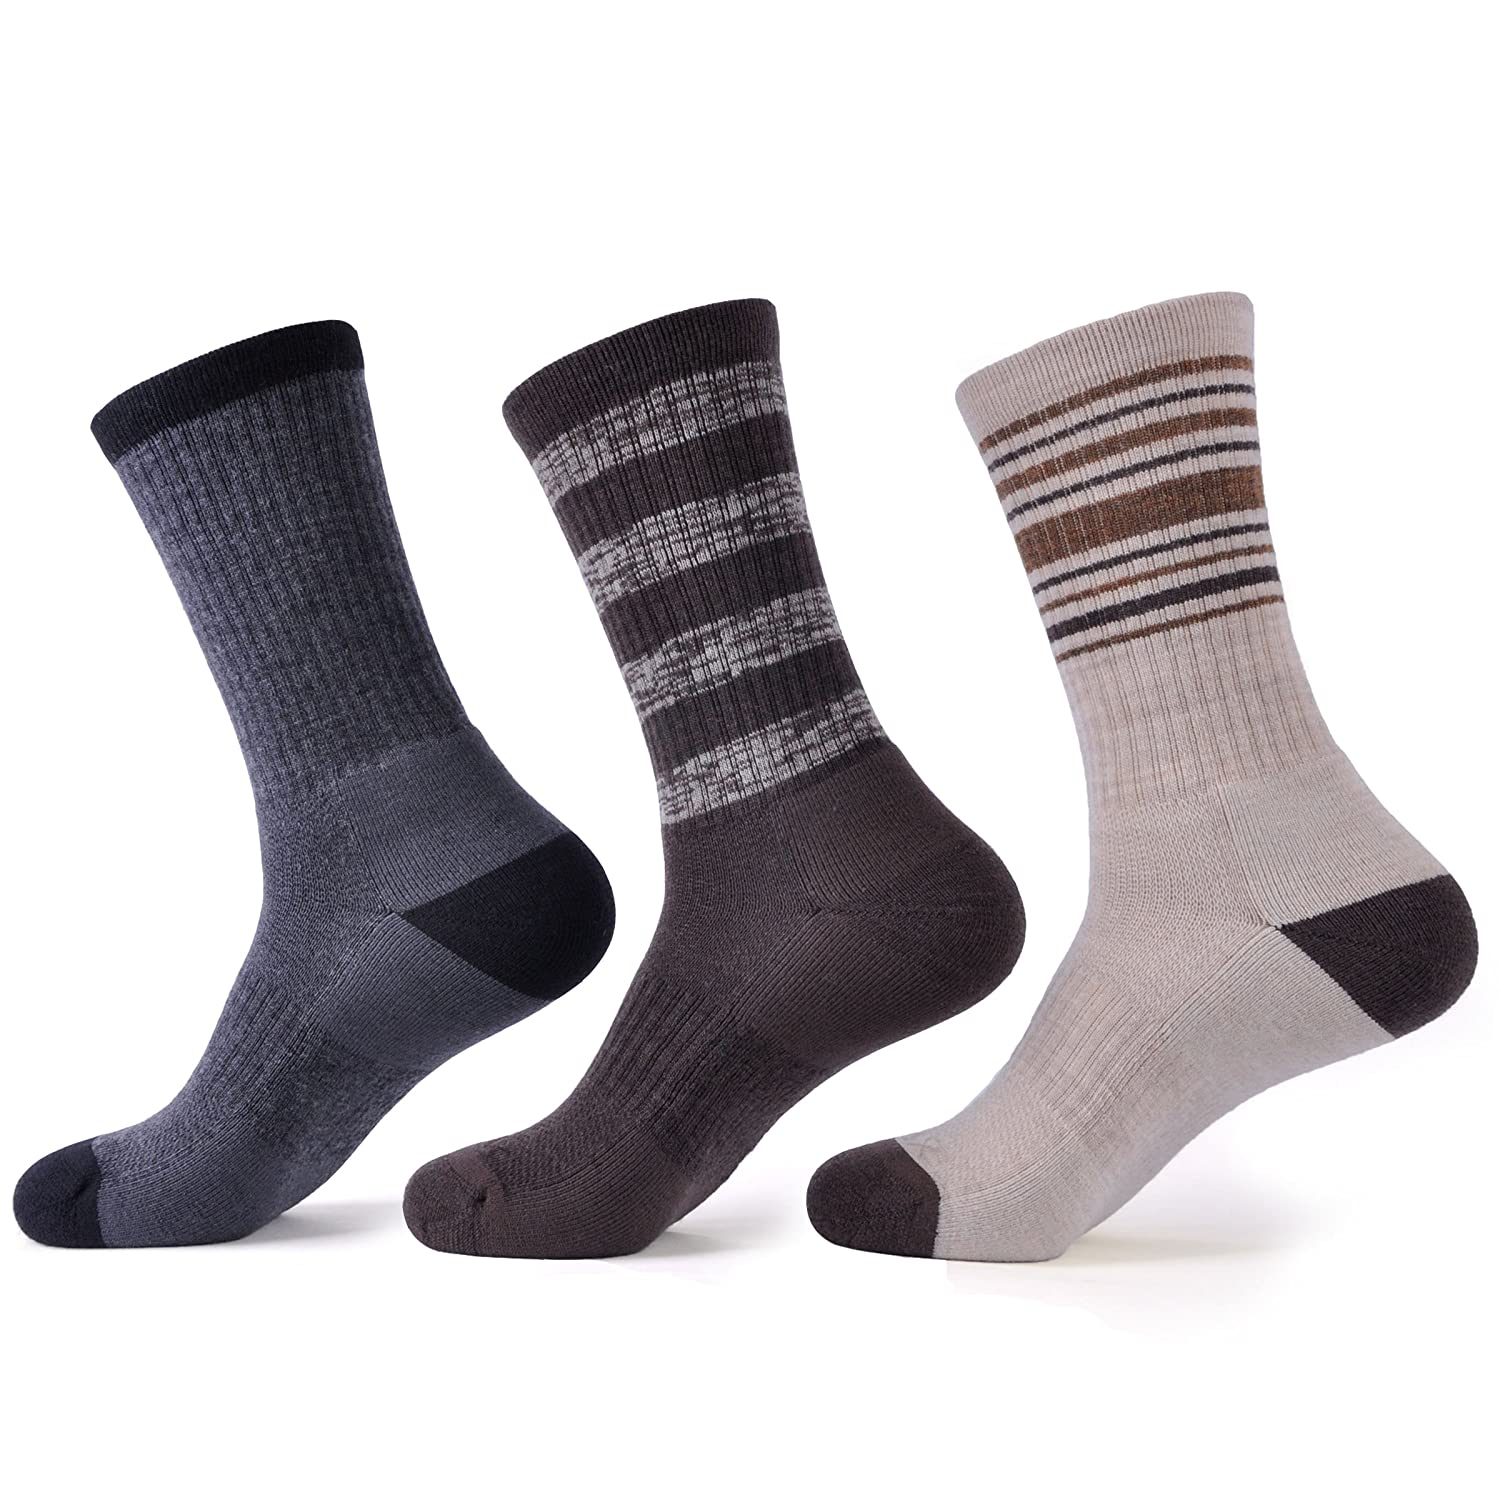 SOLAX 72% Merino Wool Socks Casual Hiking Socks (3 Pairs)